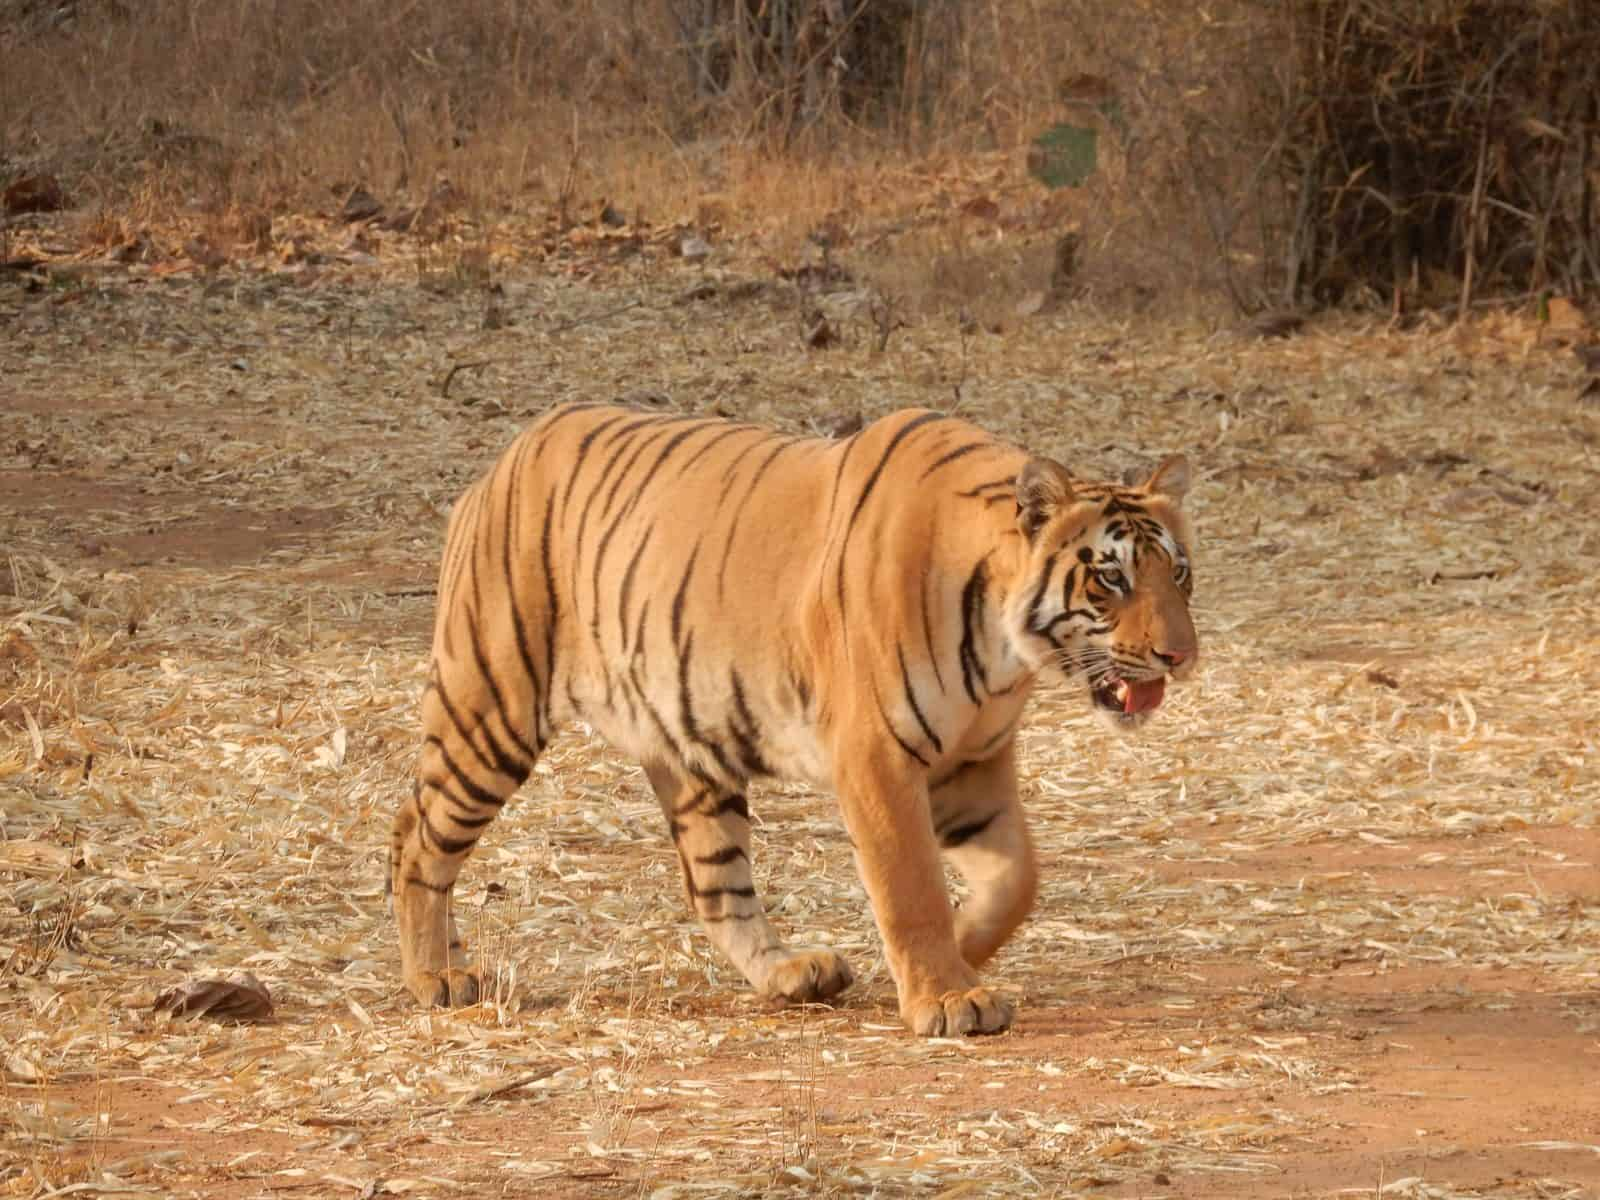 tiger walking across a dry grassy plain